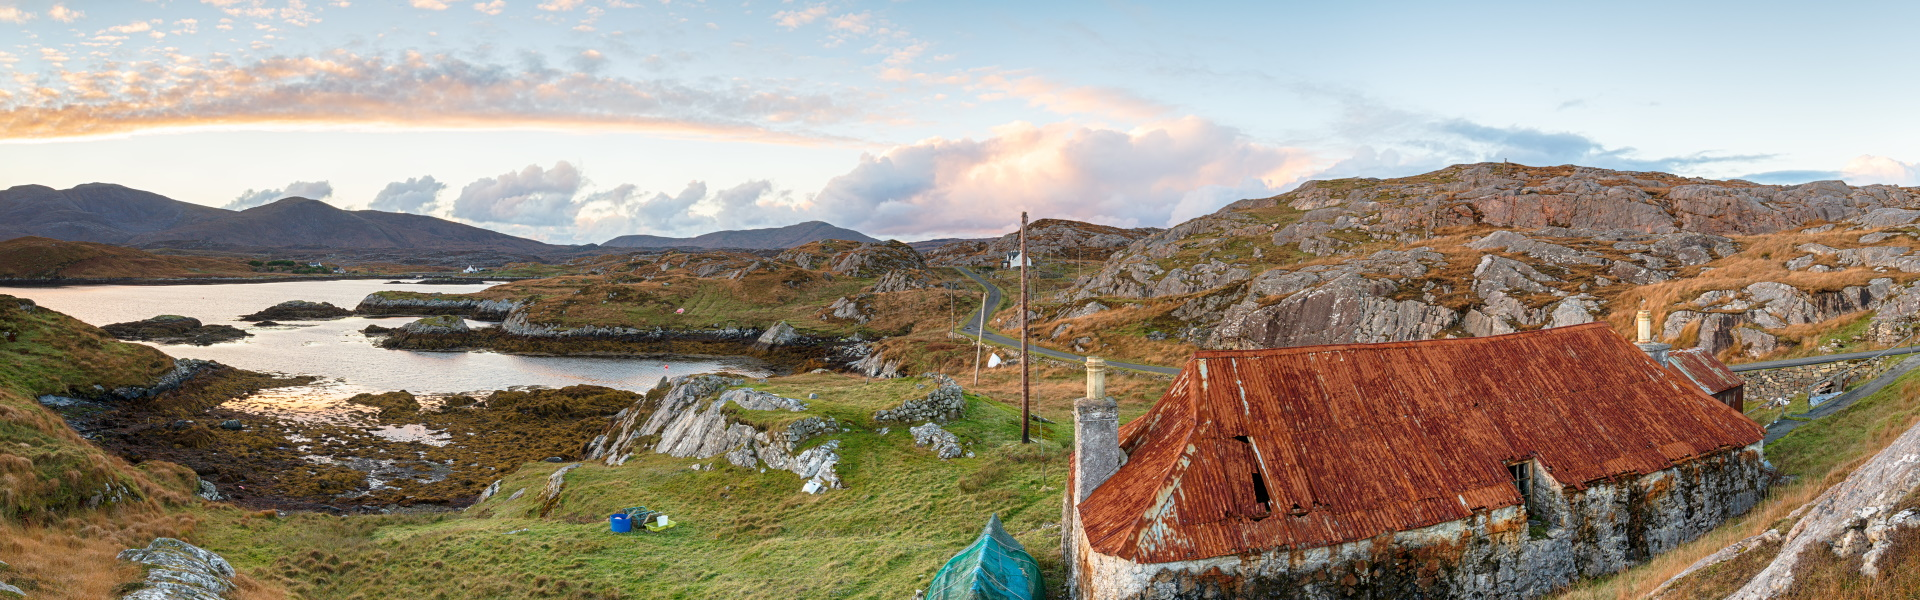 The remoteness of the Outer Hebrides